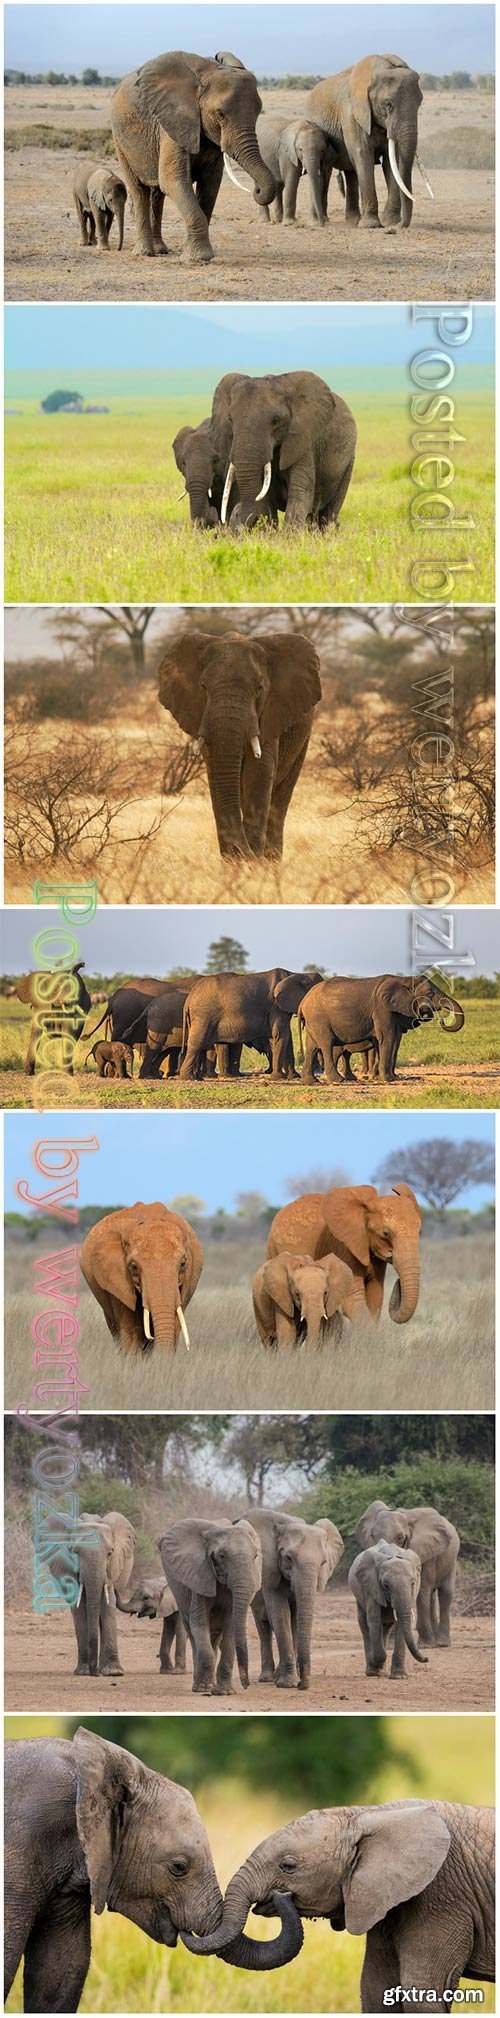 African elephants beautiful stock photo